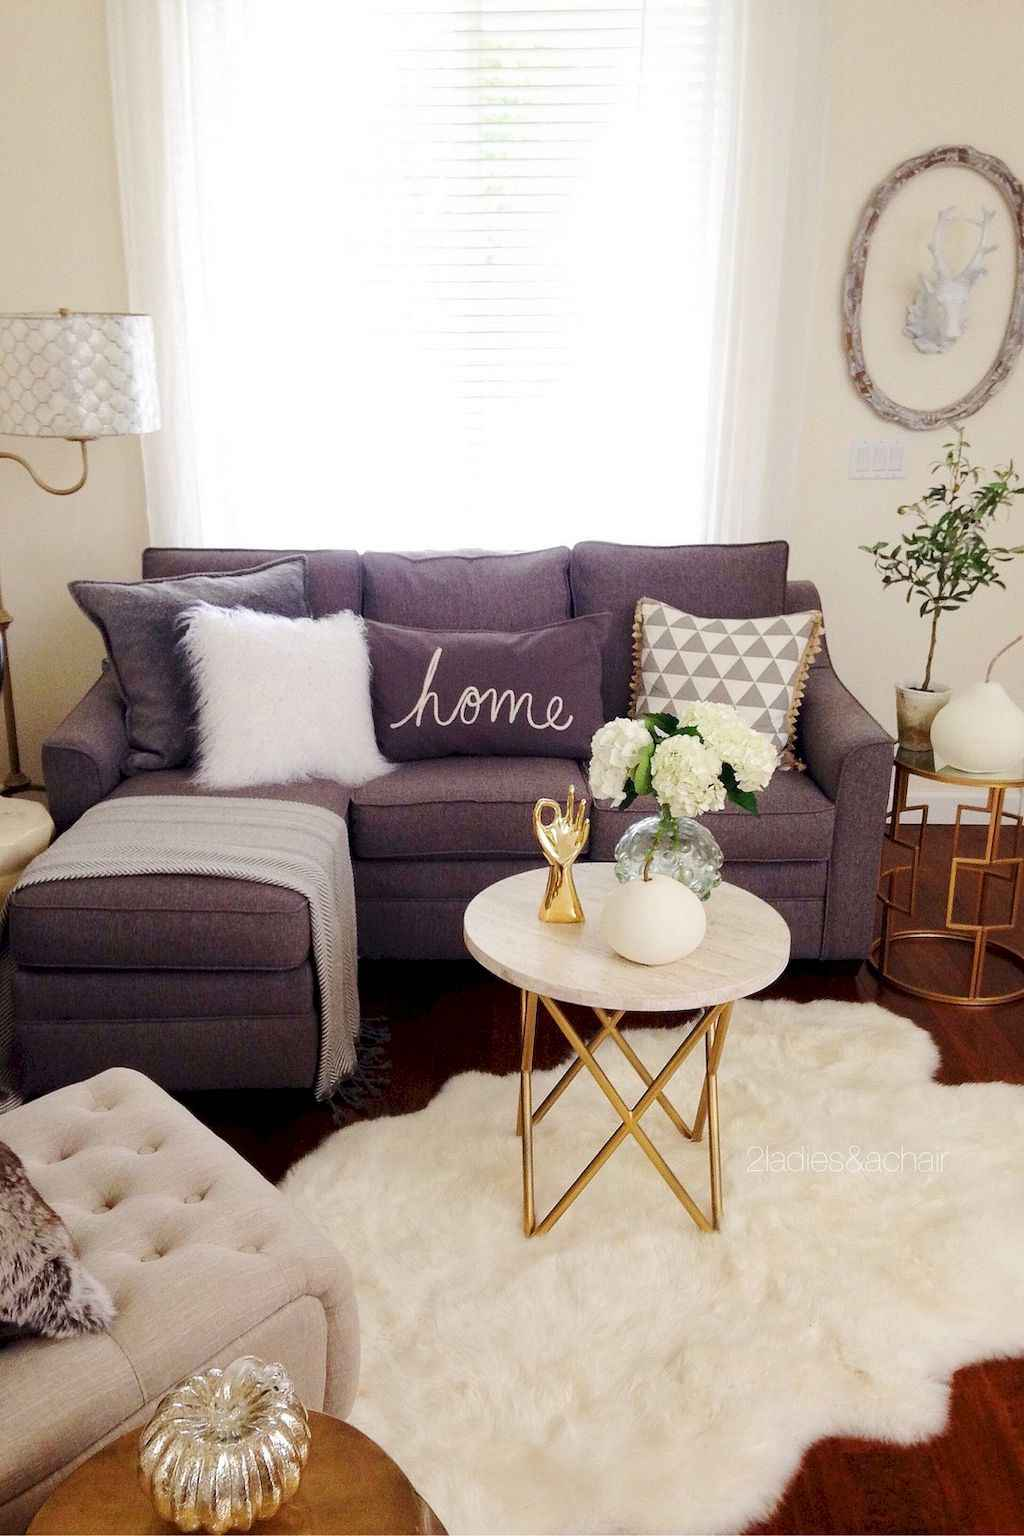 Couples first apartment decorating ideas (55)